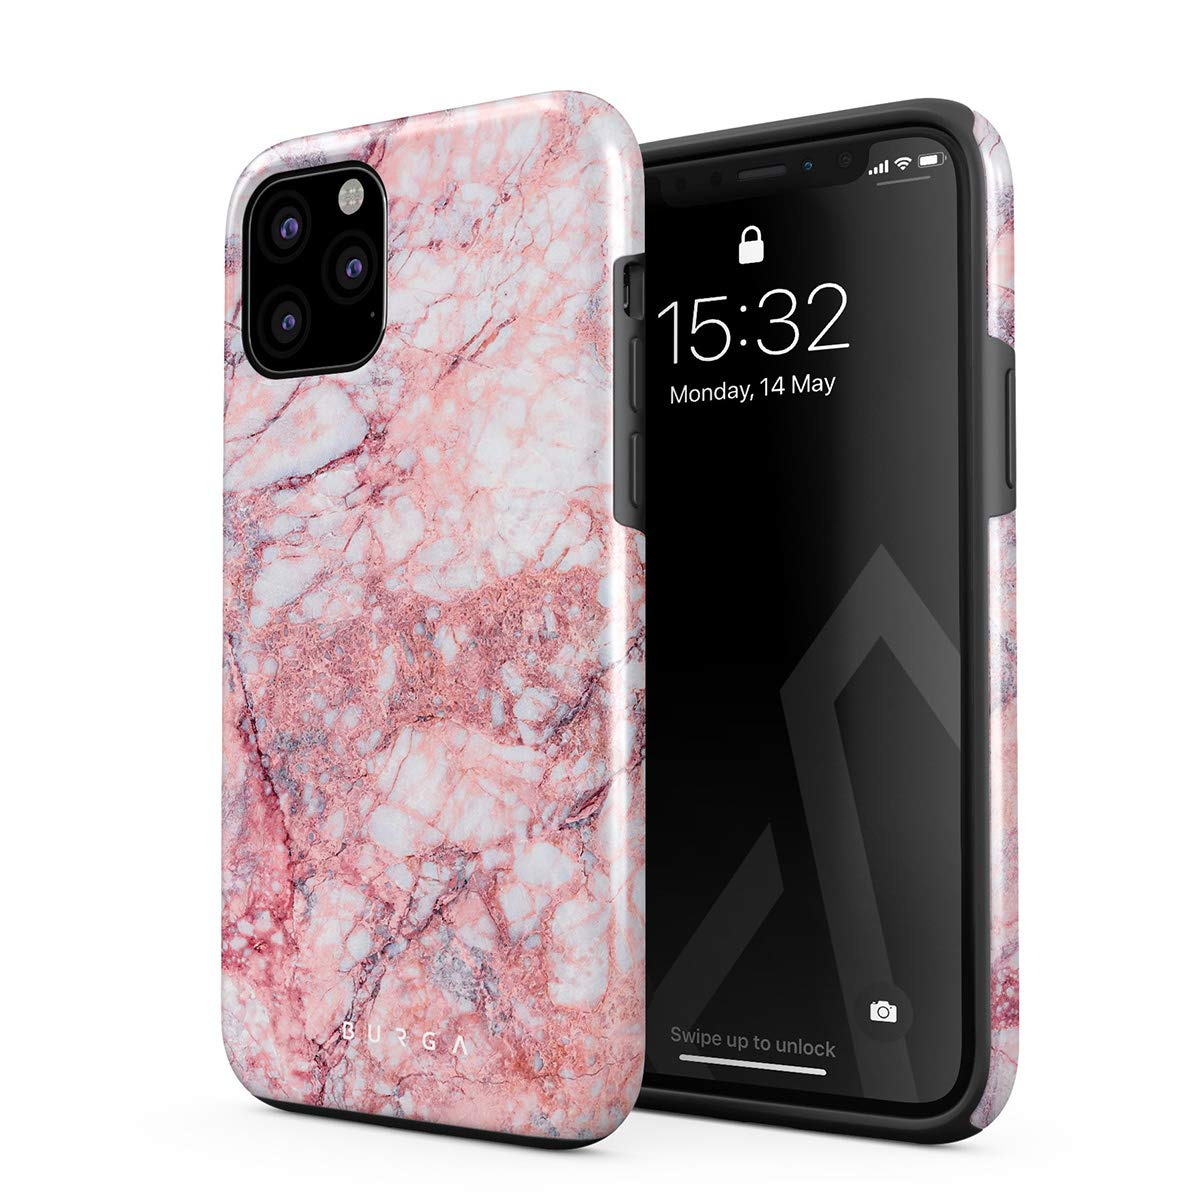 BURGA Phone Case Compatible with iPhone 11 PRO MAX - Soft Coral Light Pink Tropical Marble Cute Case for Girls Heavy Duty Shockproof Dual Layer Hard Shell + Silicone Protective Cover